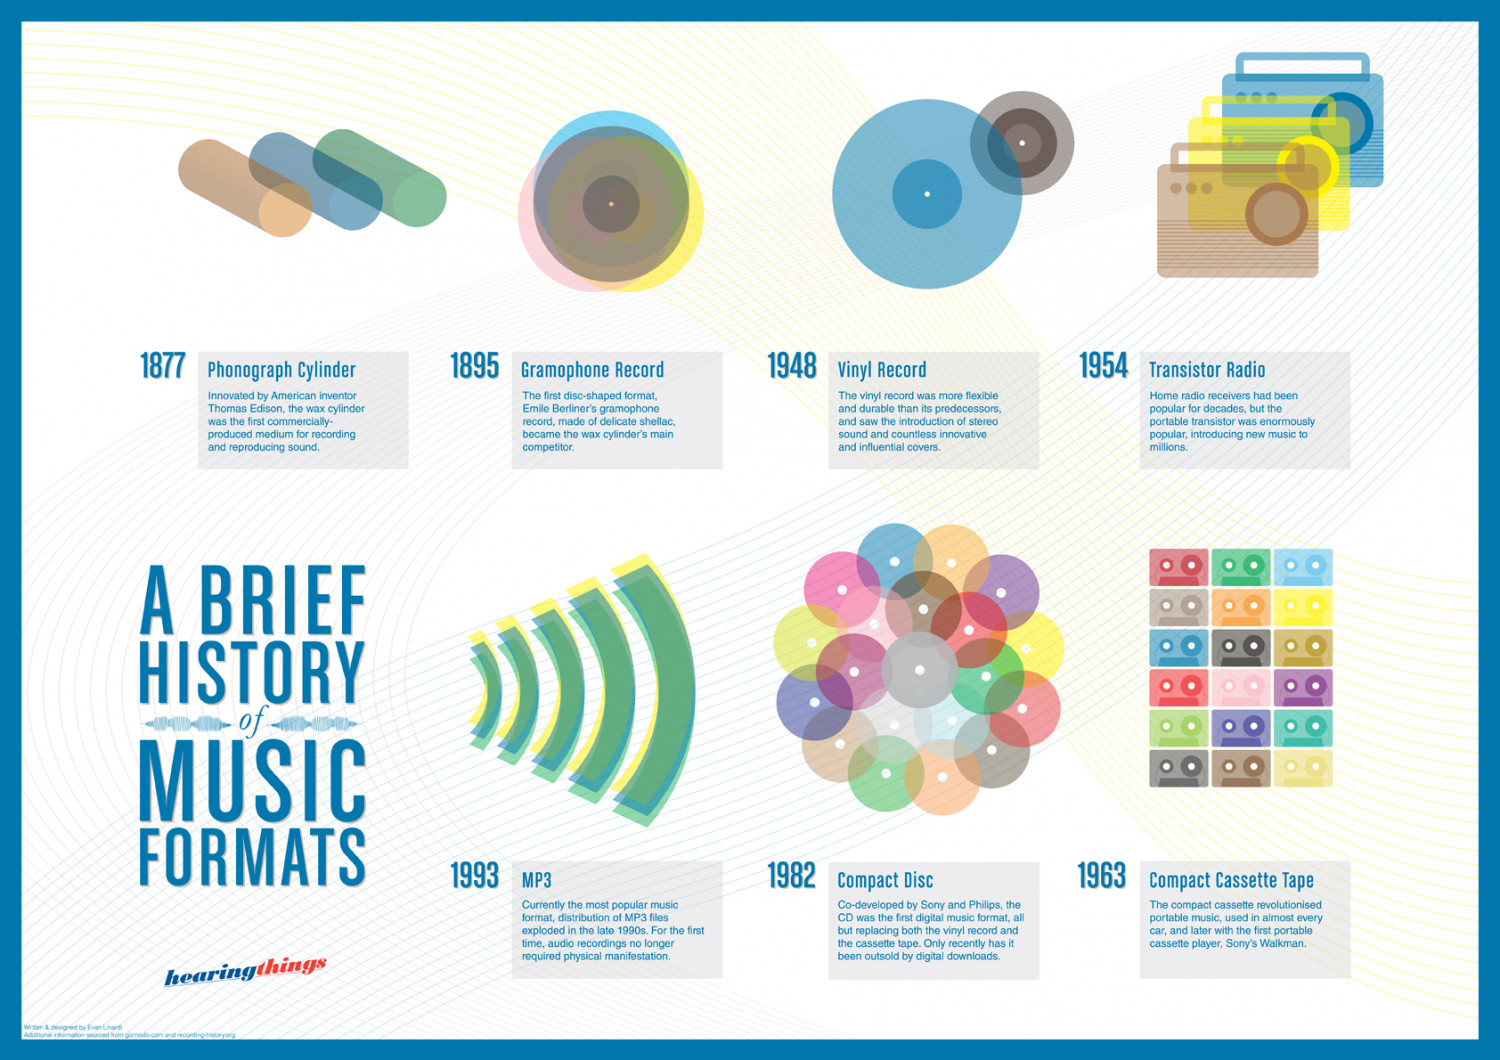 A Brief History of Music Formats Infographic